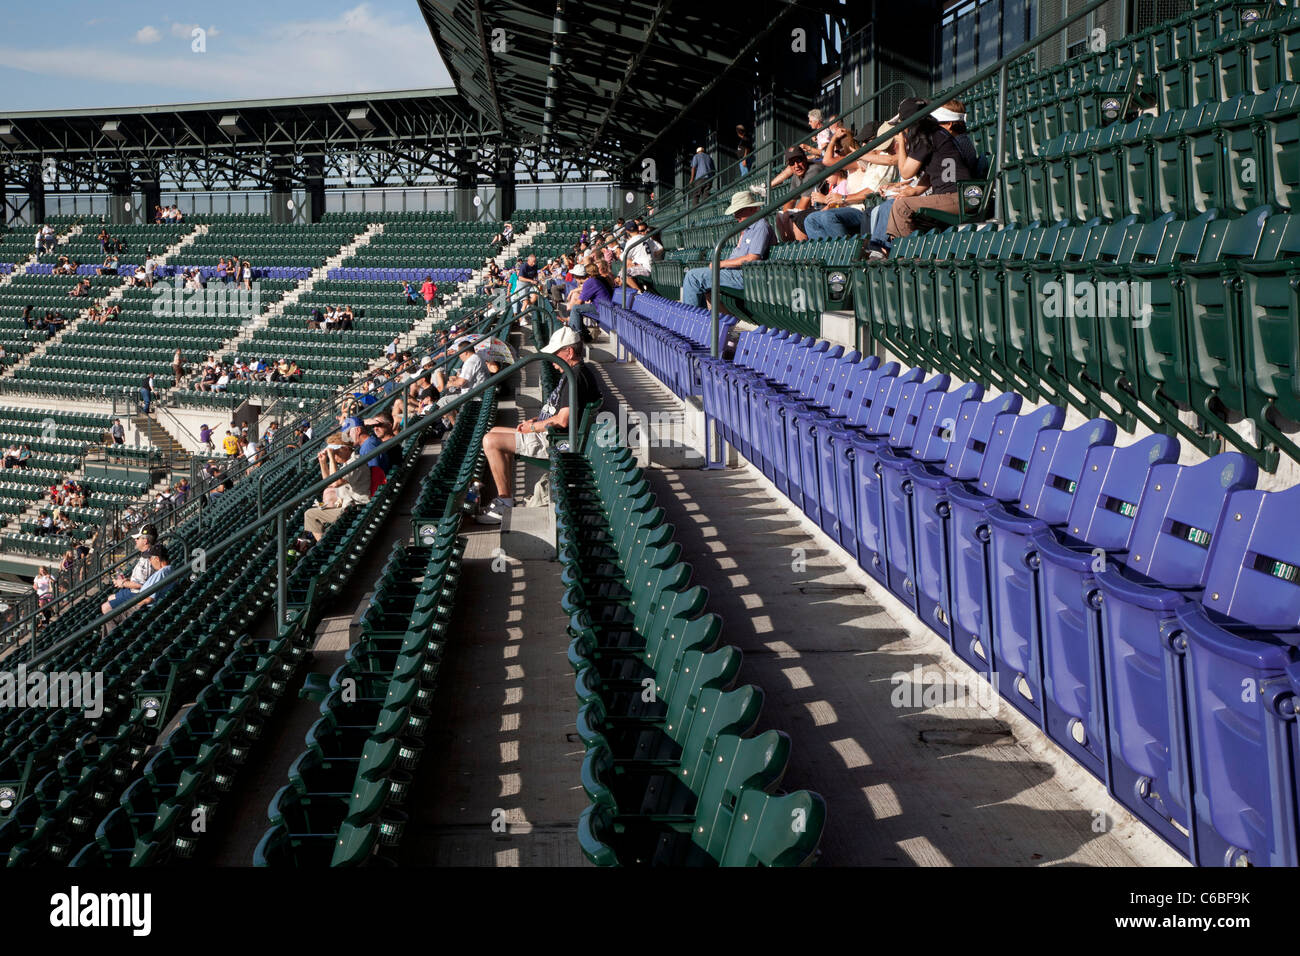 Denver, Colorado - A row of blue seats at Coors Field marks the city of Denver's mile-high elevation - Stock Image